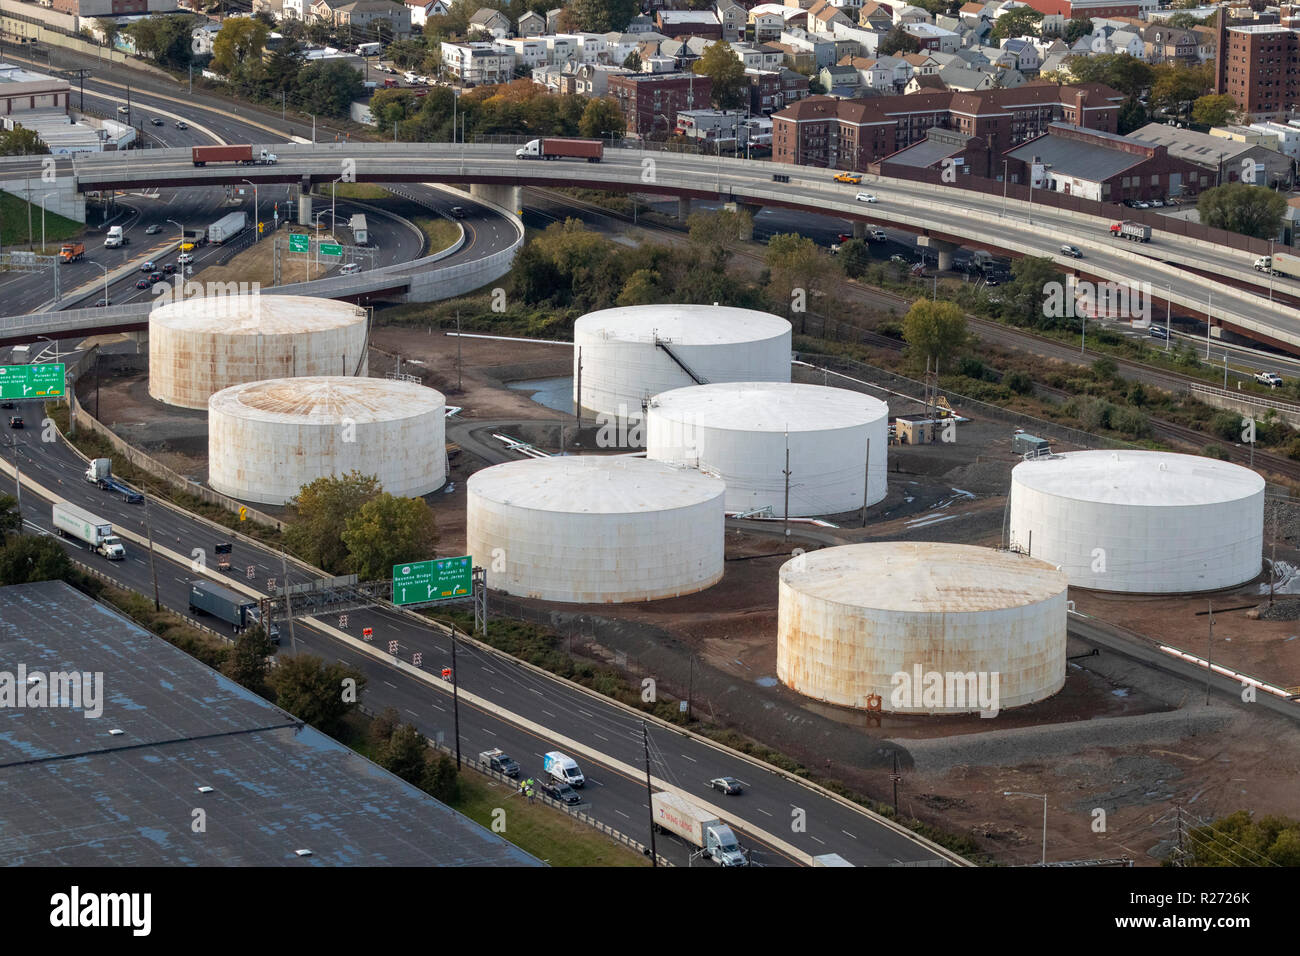 helicopter aerial view of storage tanks, Bayonne, Jersey City, New Jersey, USA - Stock Image